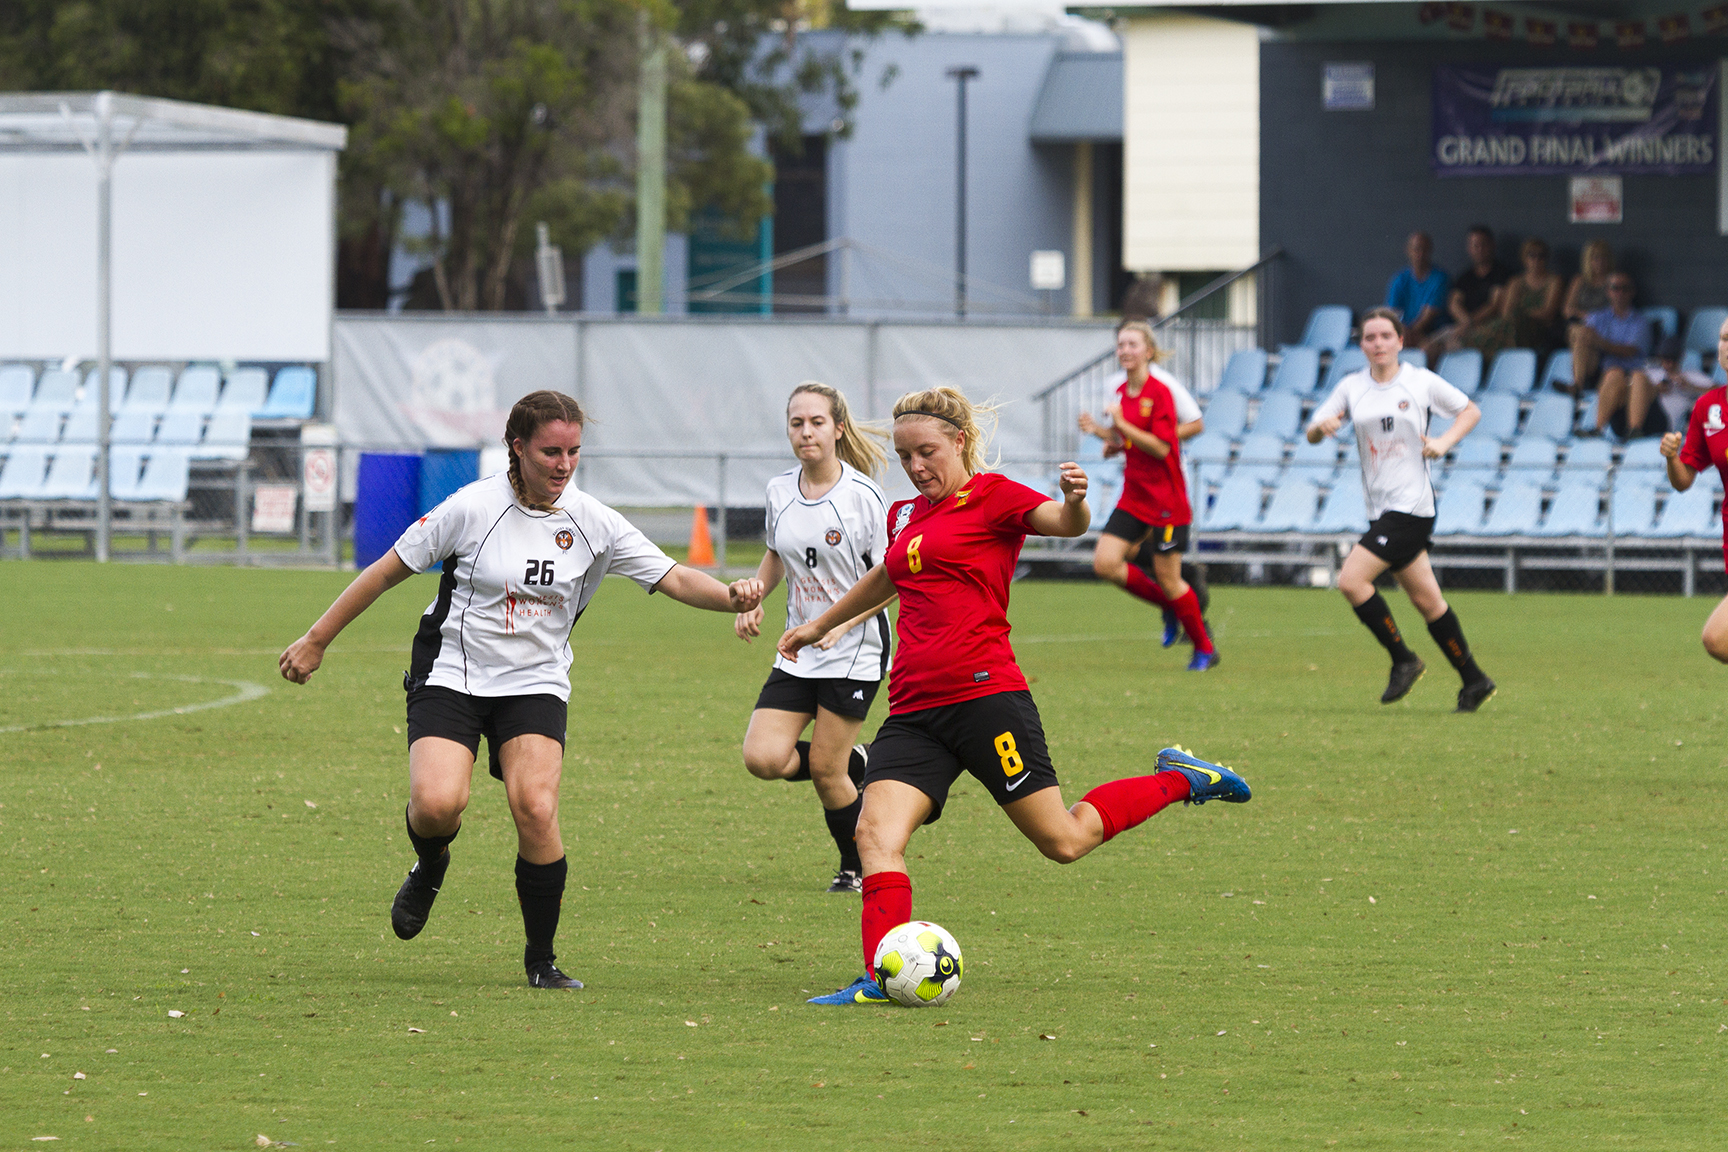 PS4 WNPL QLD Round 1 – Easts Power Past Fire